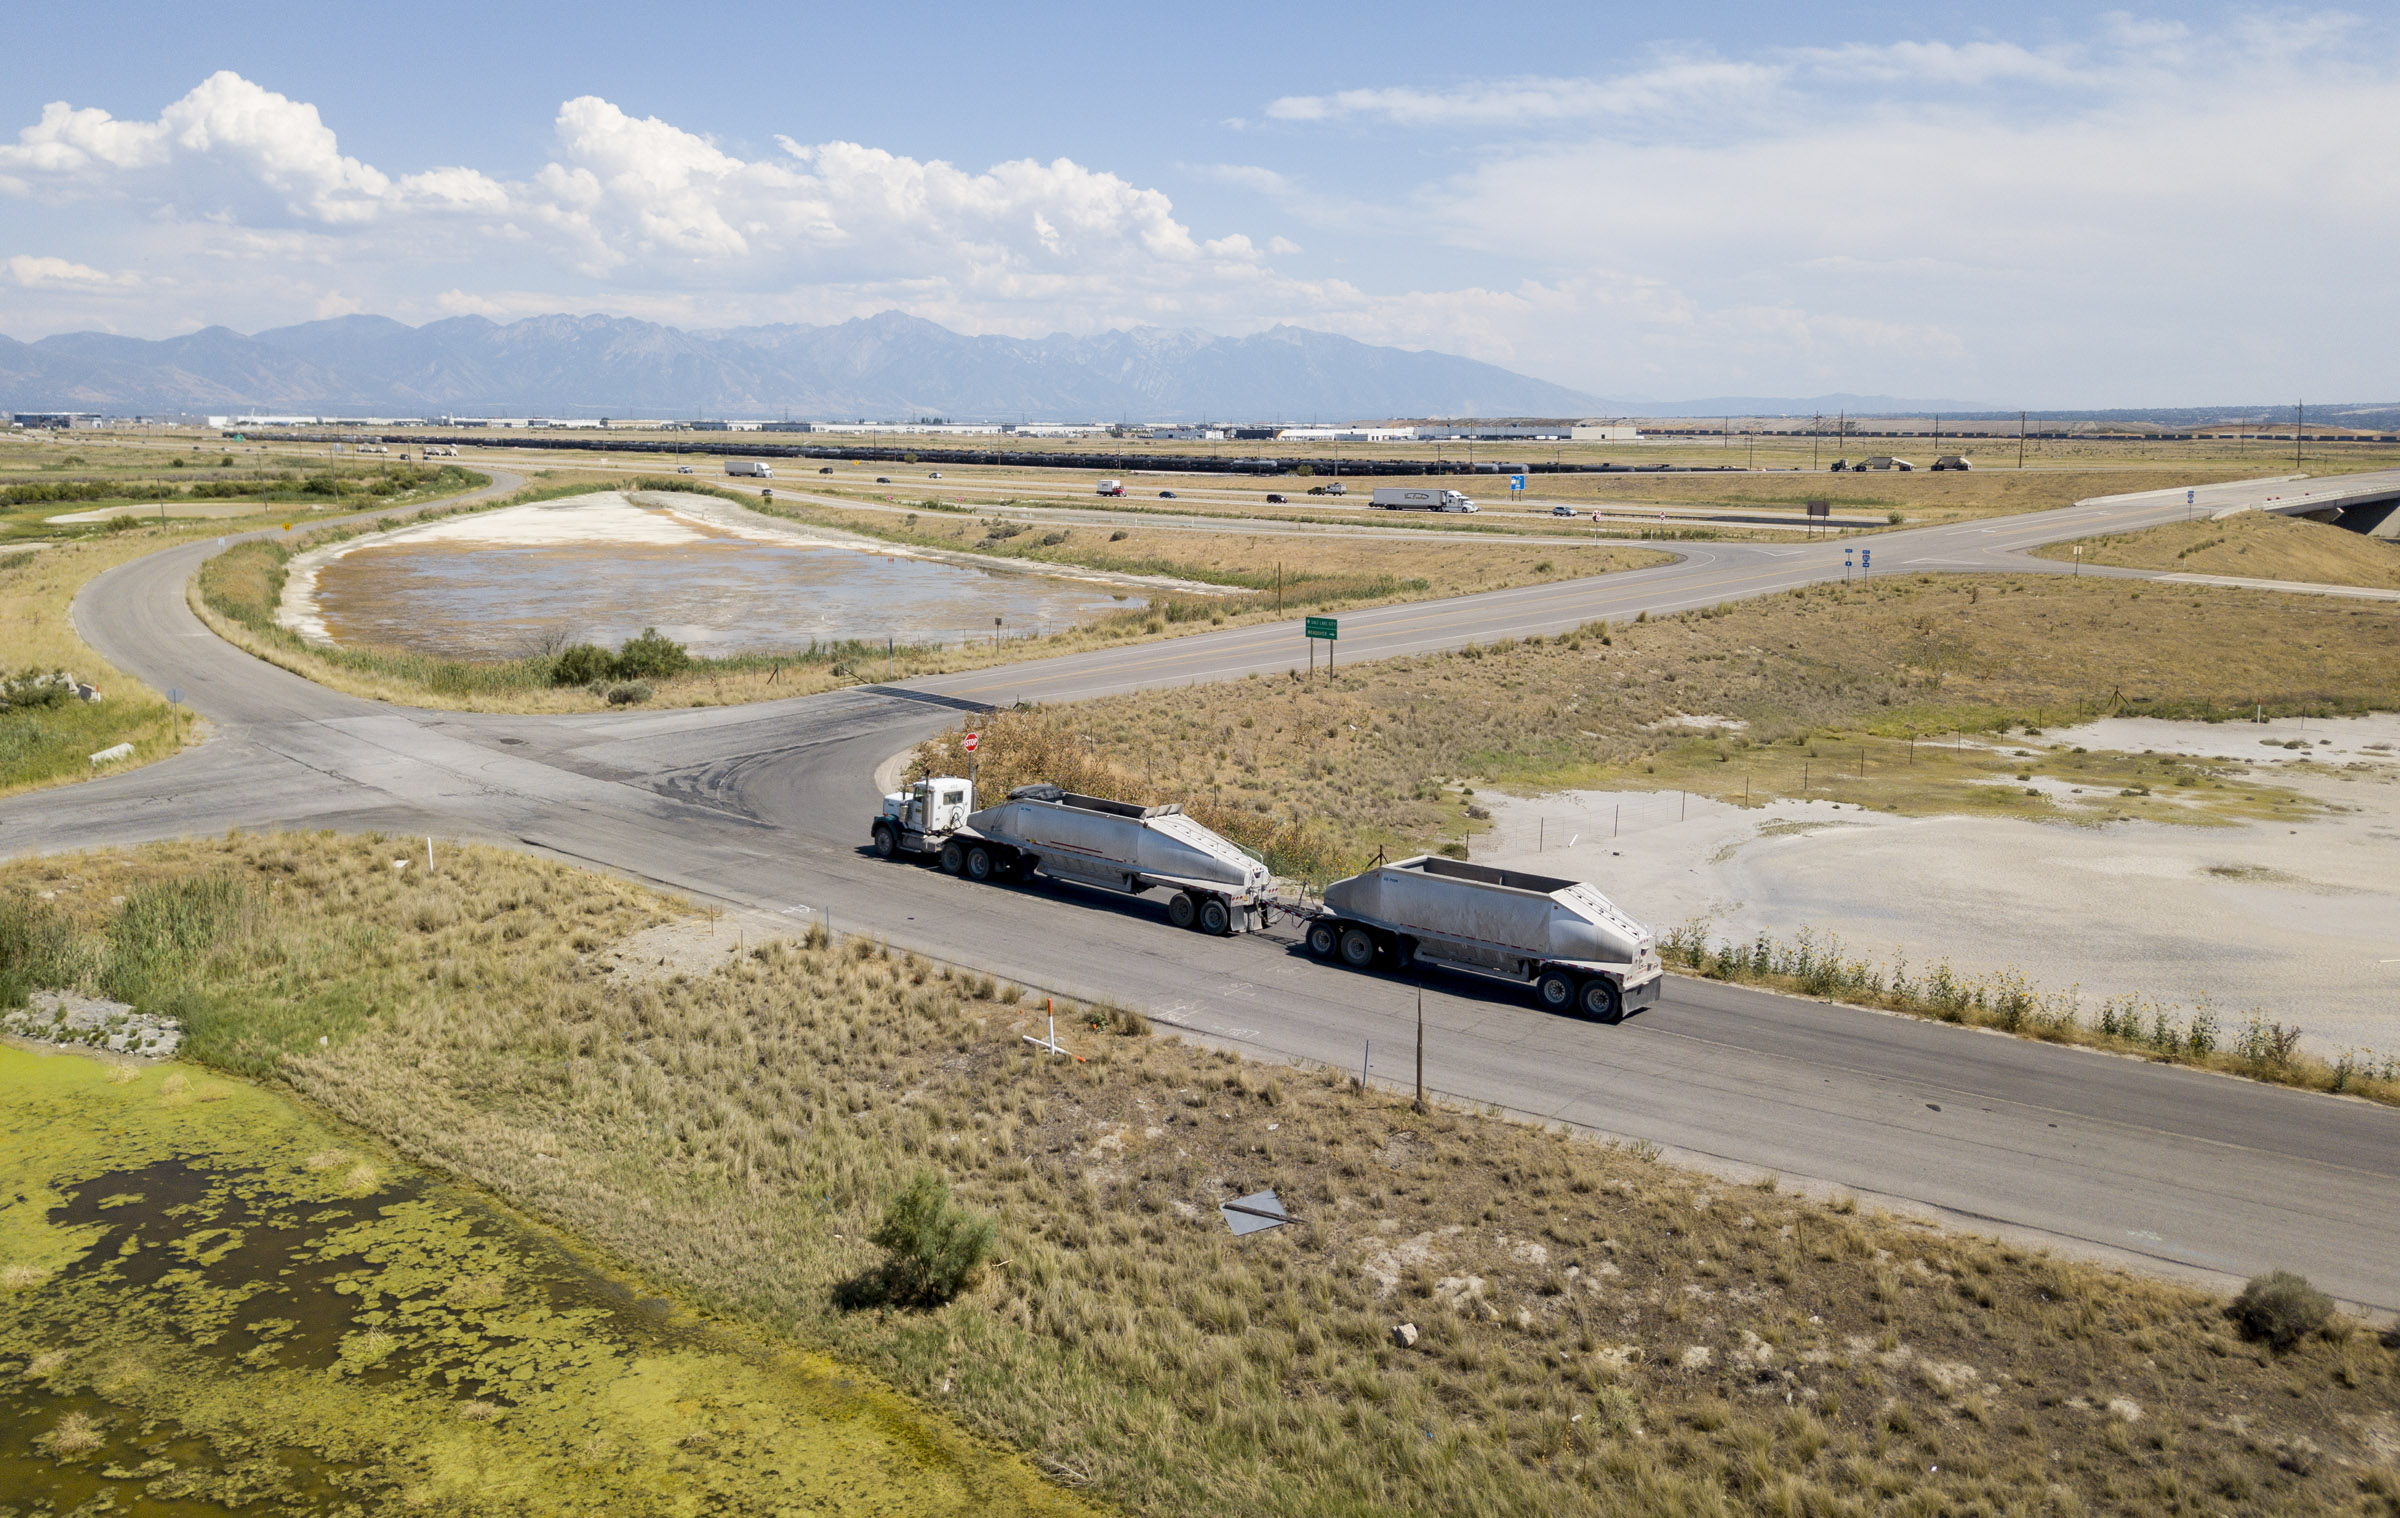 A section of land looking southeast at 7200 West and I-80 that is part of the proposed Utah Inland Port in Salt Lake City is pictured on Monday, July 16, 2018. Gov. Gary Herbert joined legislative and local elected leaders to discuss consensus recommendations for the Utah Inland Port during press conference at the Capitol in Salt Lake City on Monday, July 16, 2018.